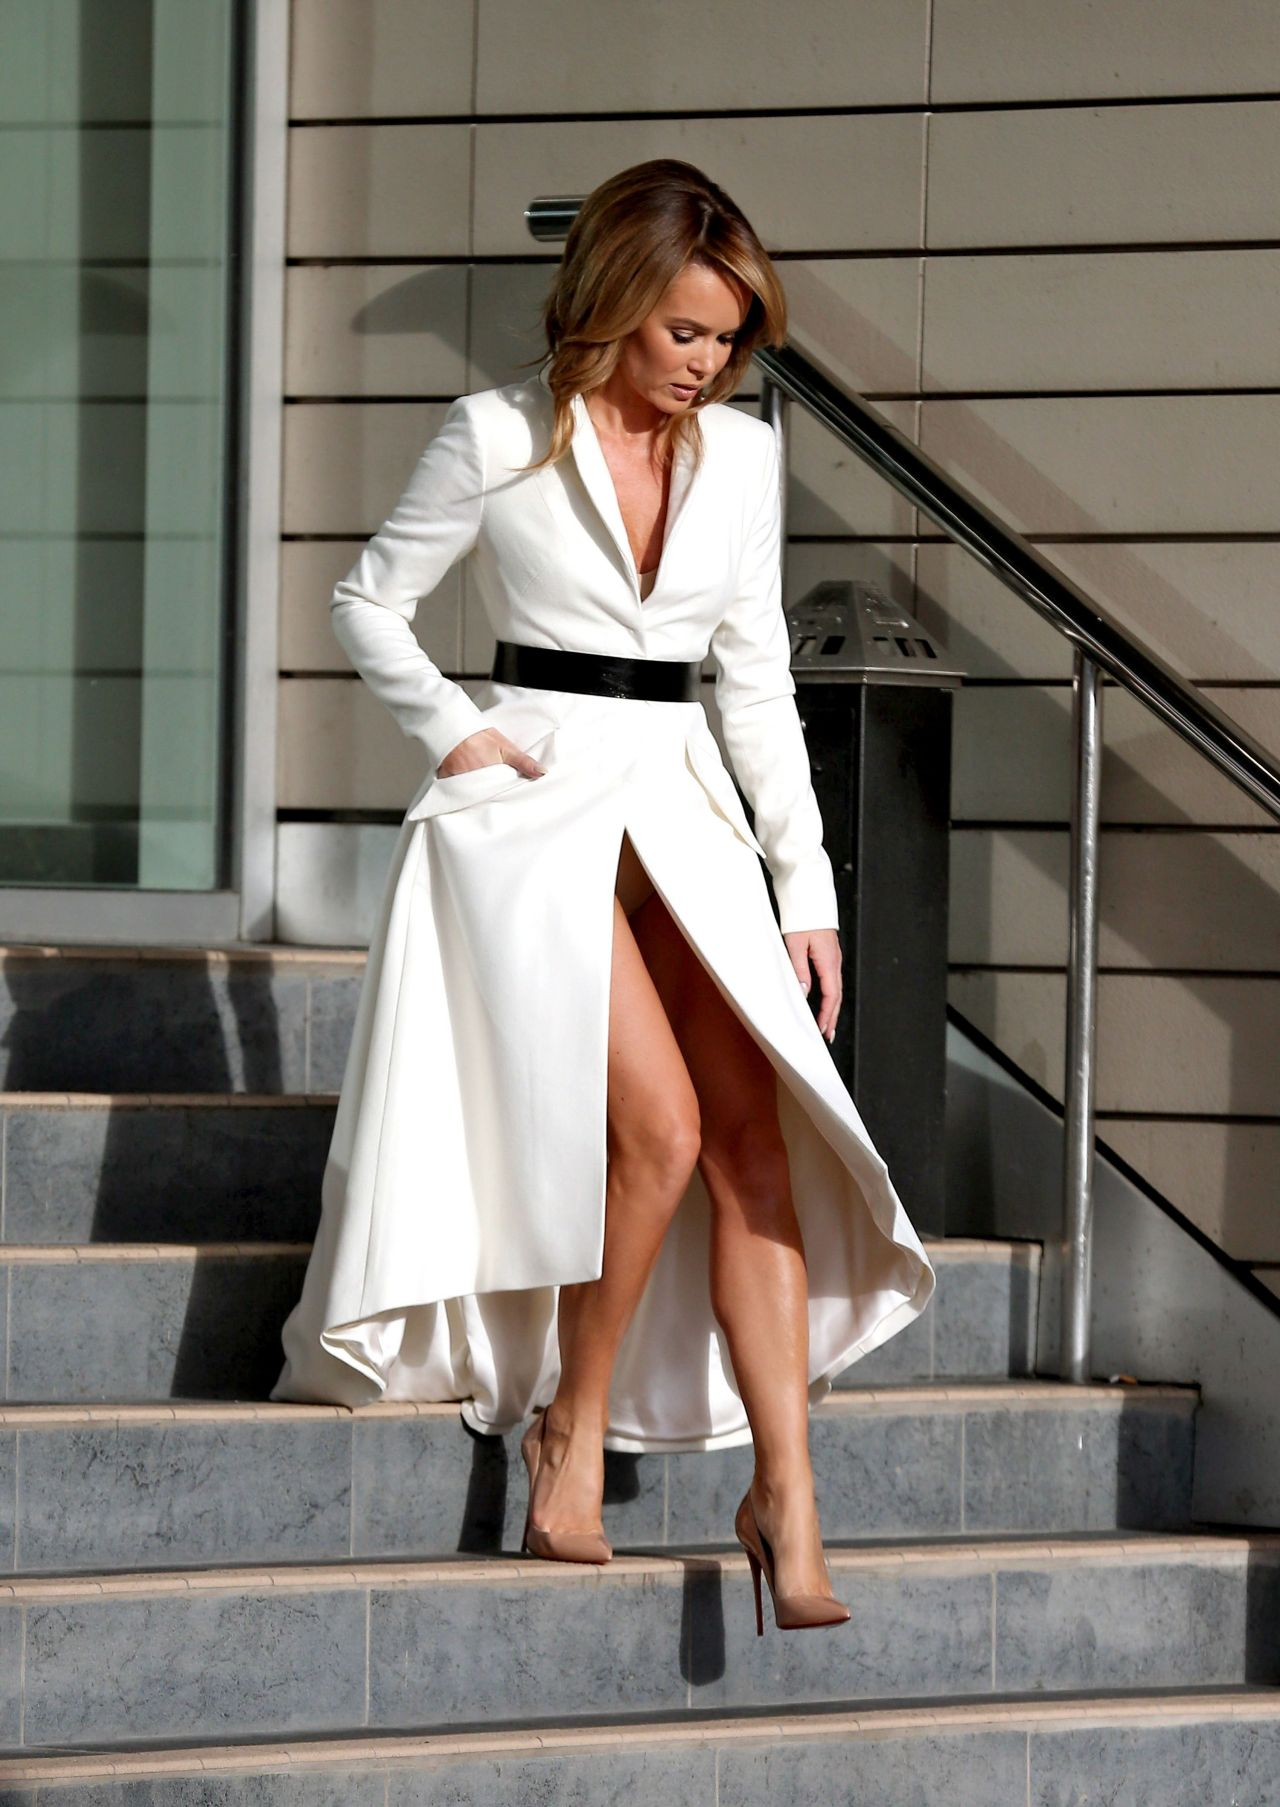 Amanda Holden - Britains Got Talent Auditions In Manchester, January 2015-2771